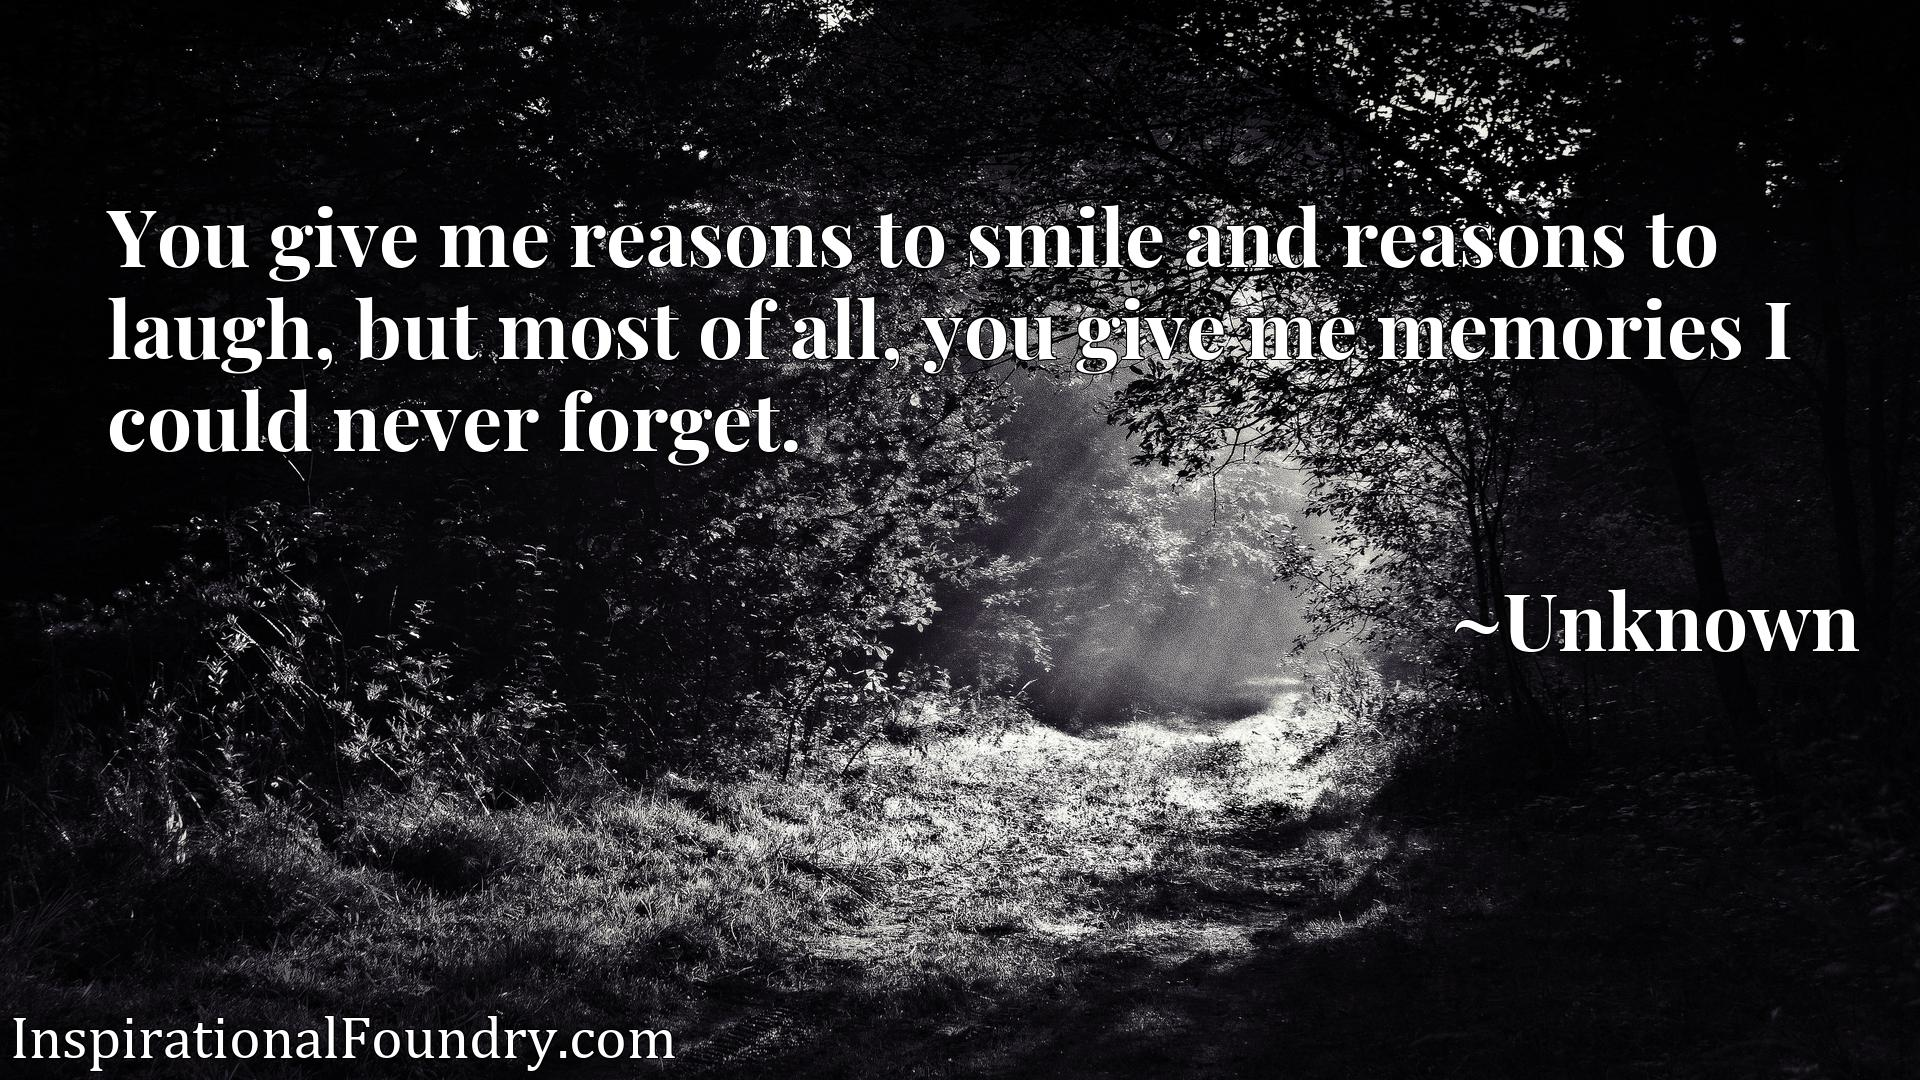 You give me reasons to smile and reasons to laugh, but most of all, you give me memories I could never forget.